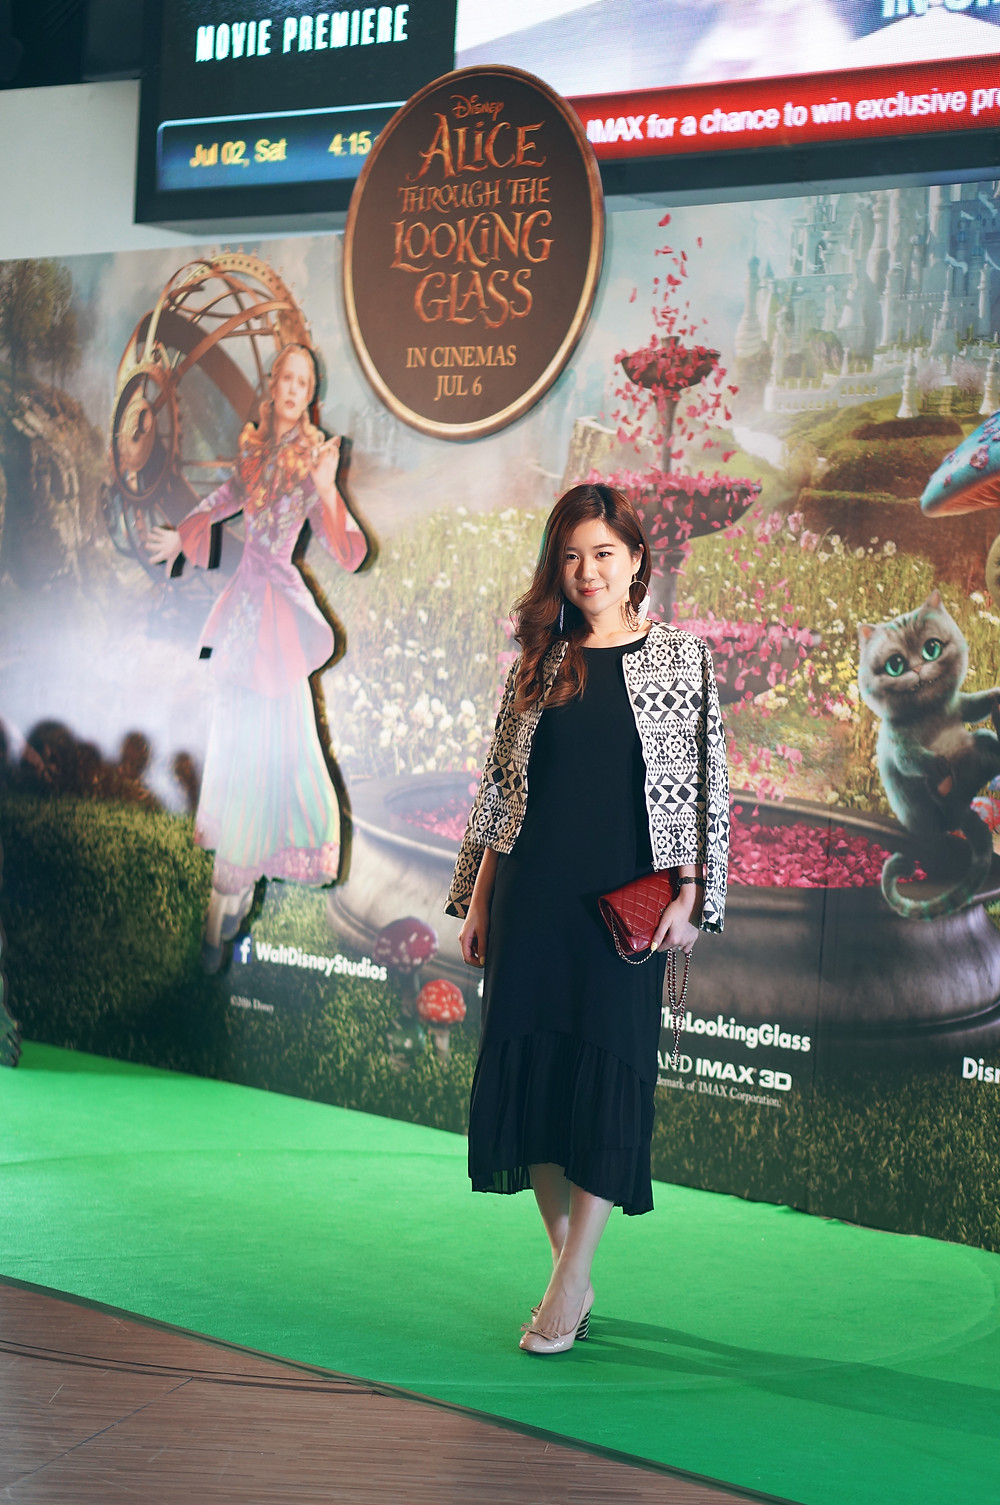 Alice Through The Looking Glass Singapore 30